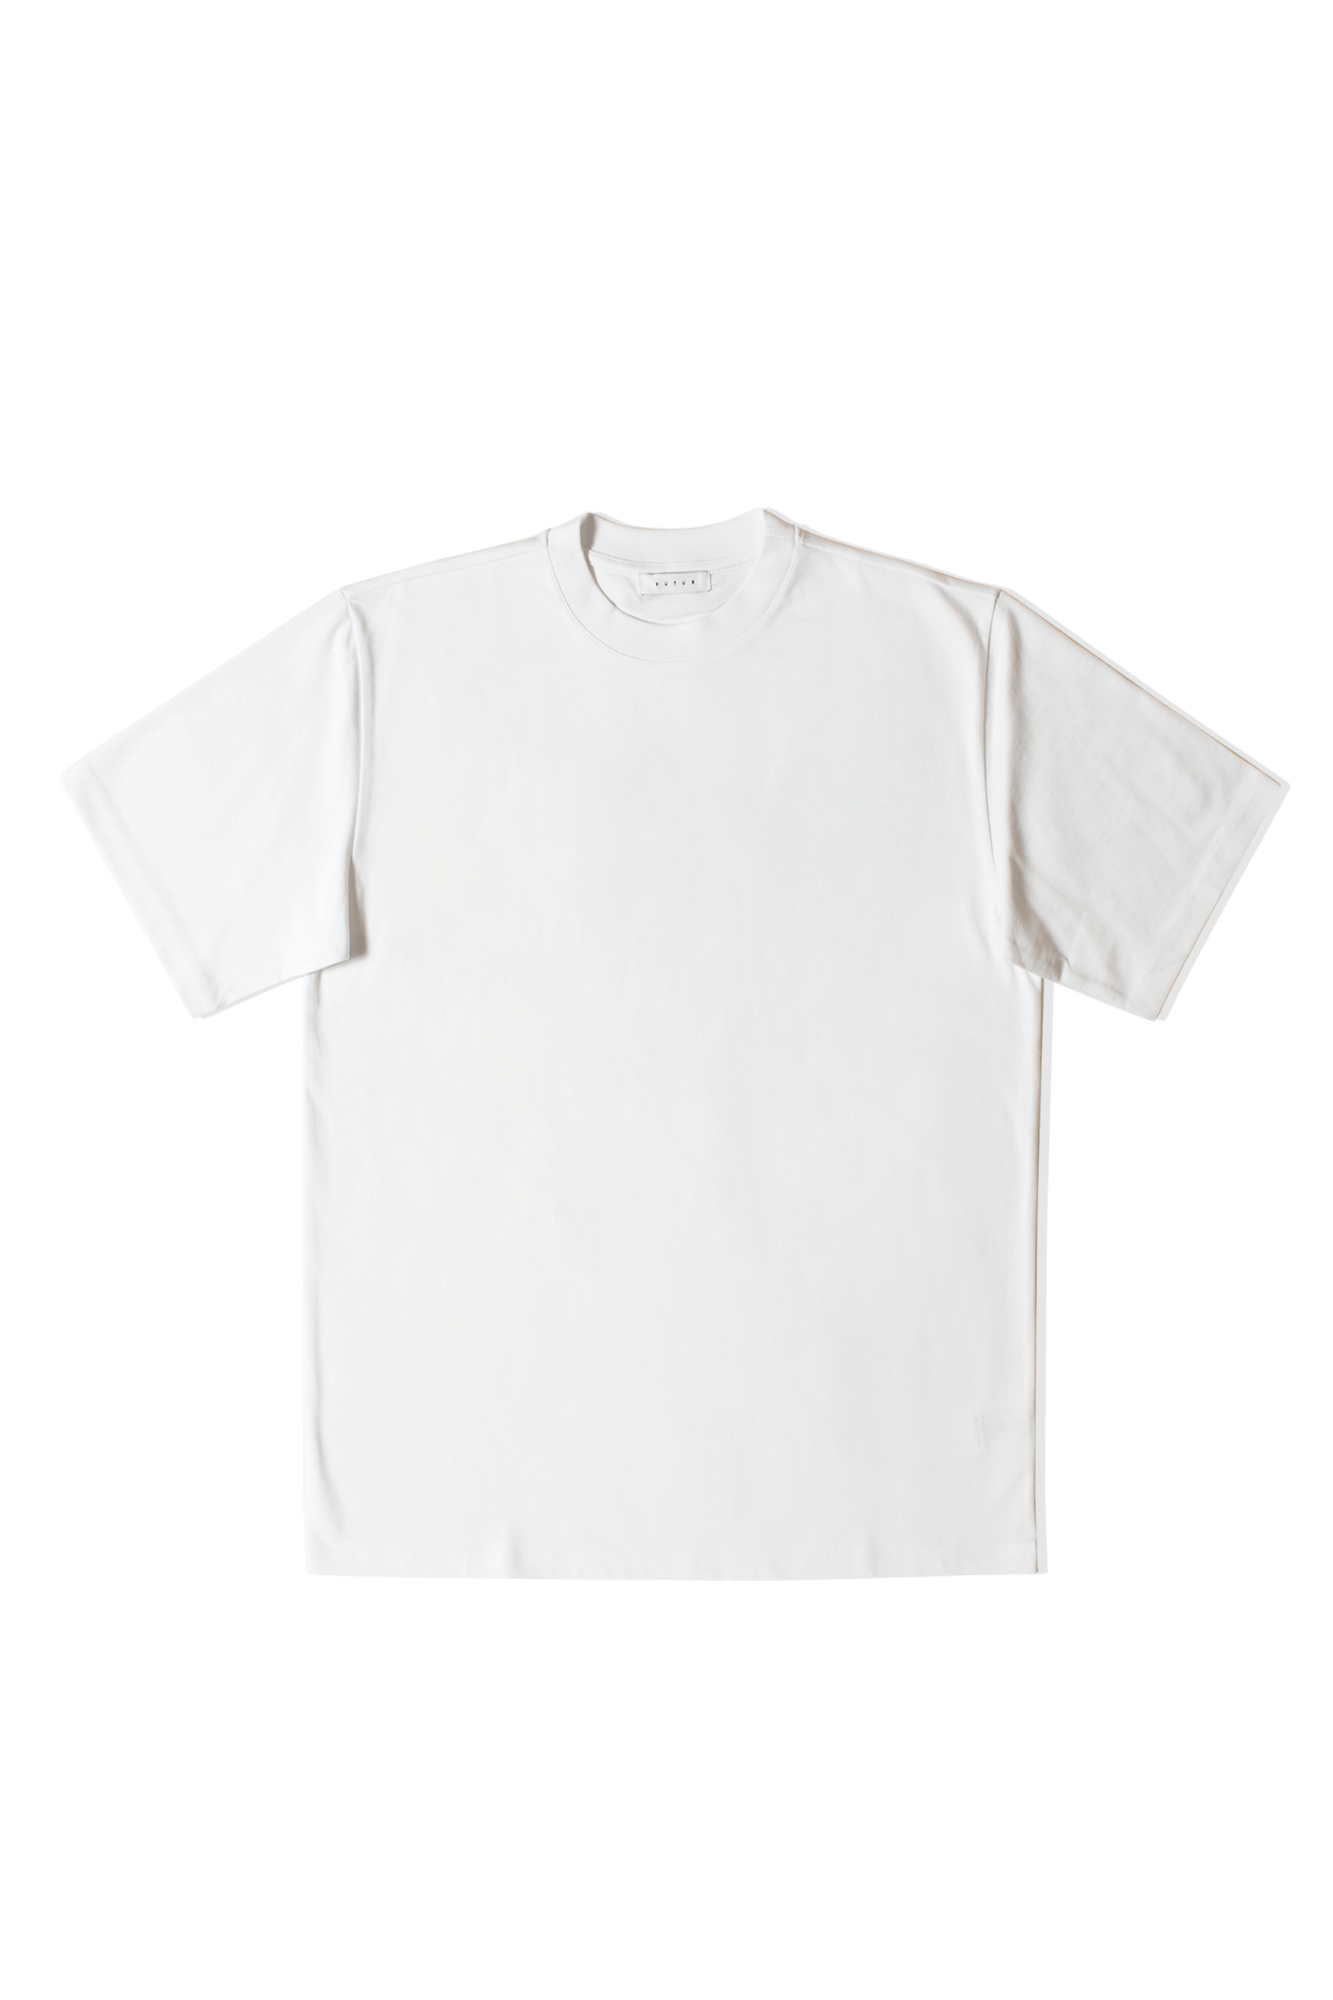 Futur T-Shirts G Fit Play T-Shirt White F110109#000#WHT#S - One Block Down